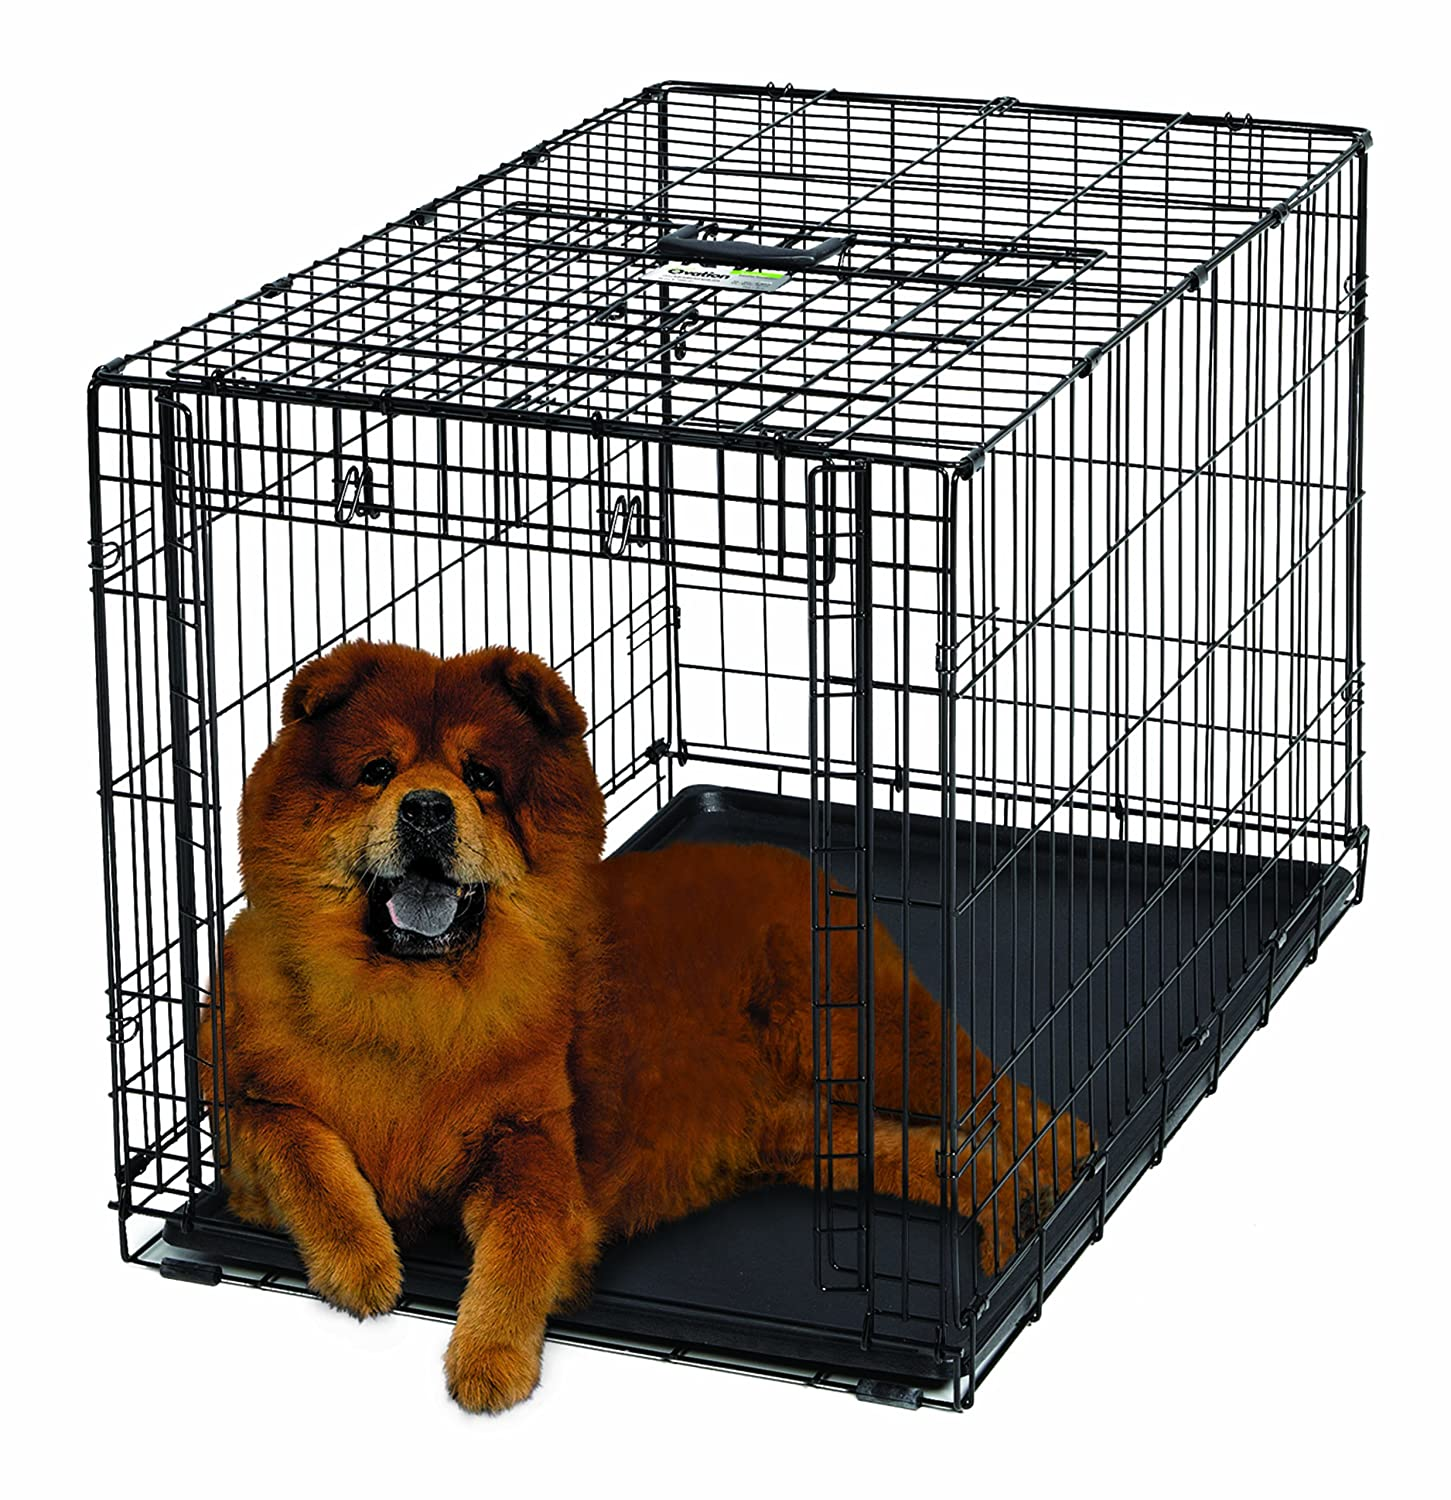 Amazon.com : MidWest Homes For Pets Ovation Single Door Dog Crate, 36 Inch  : Pet Supplies